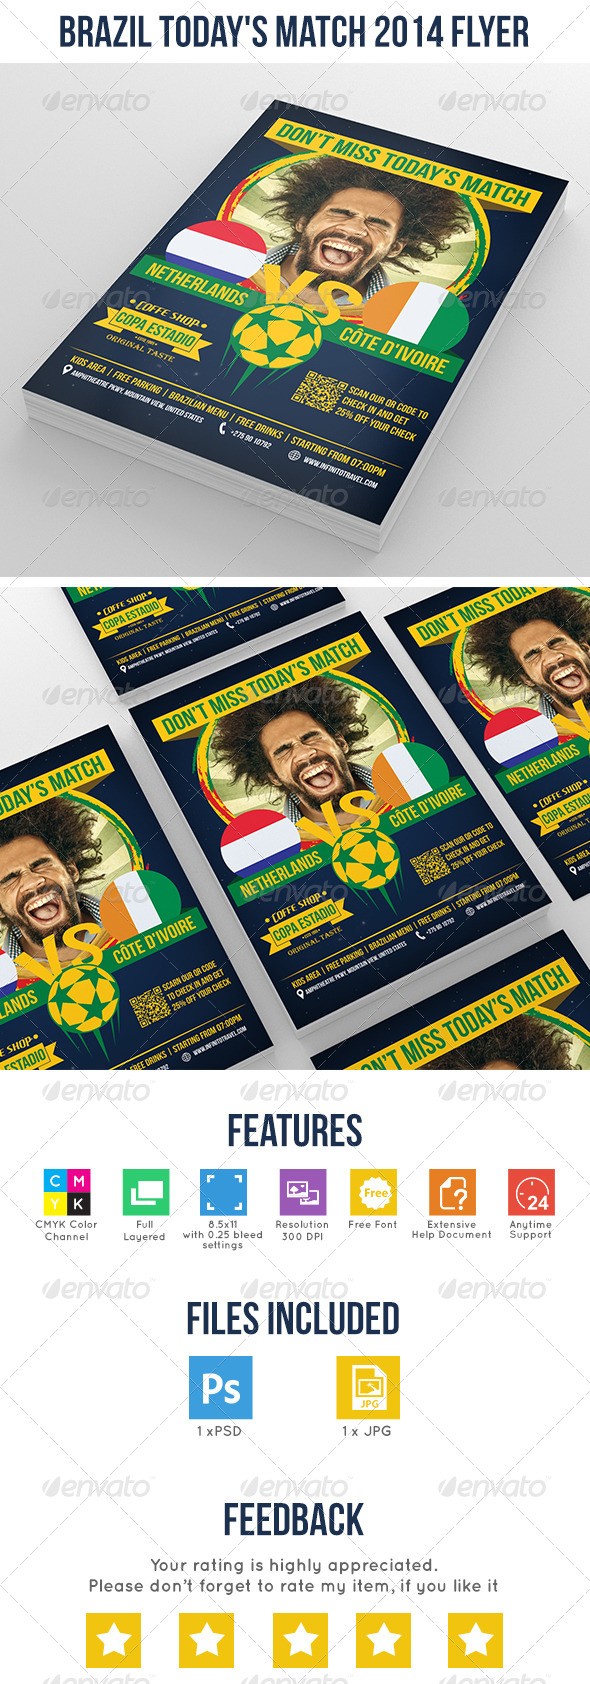 GraphicRiver Brazil Today s Match 2014 Flyer 7827601